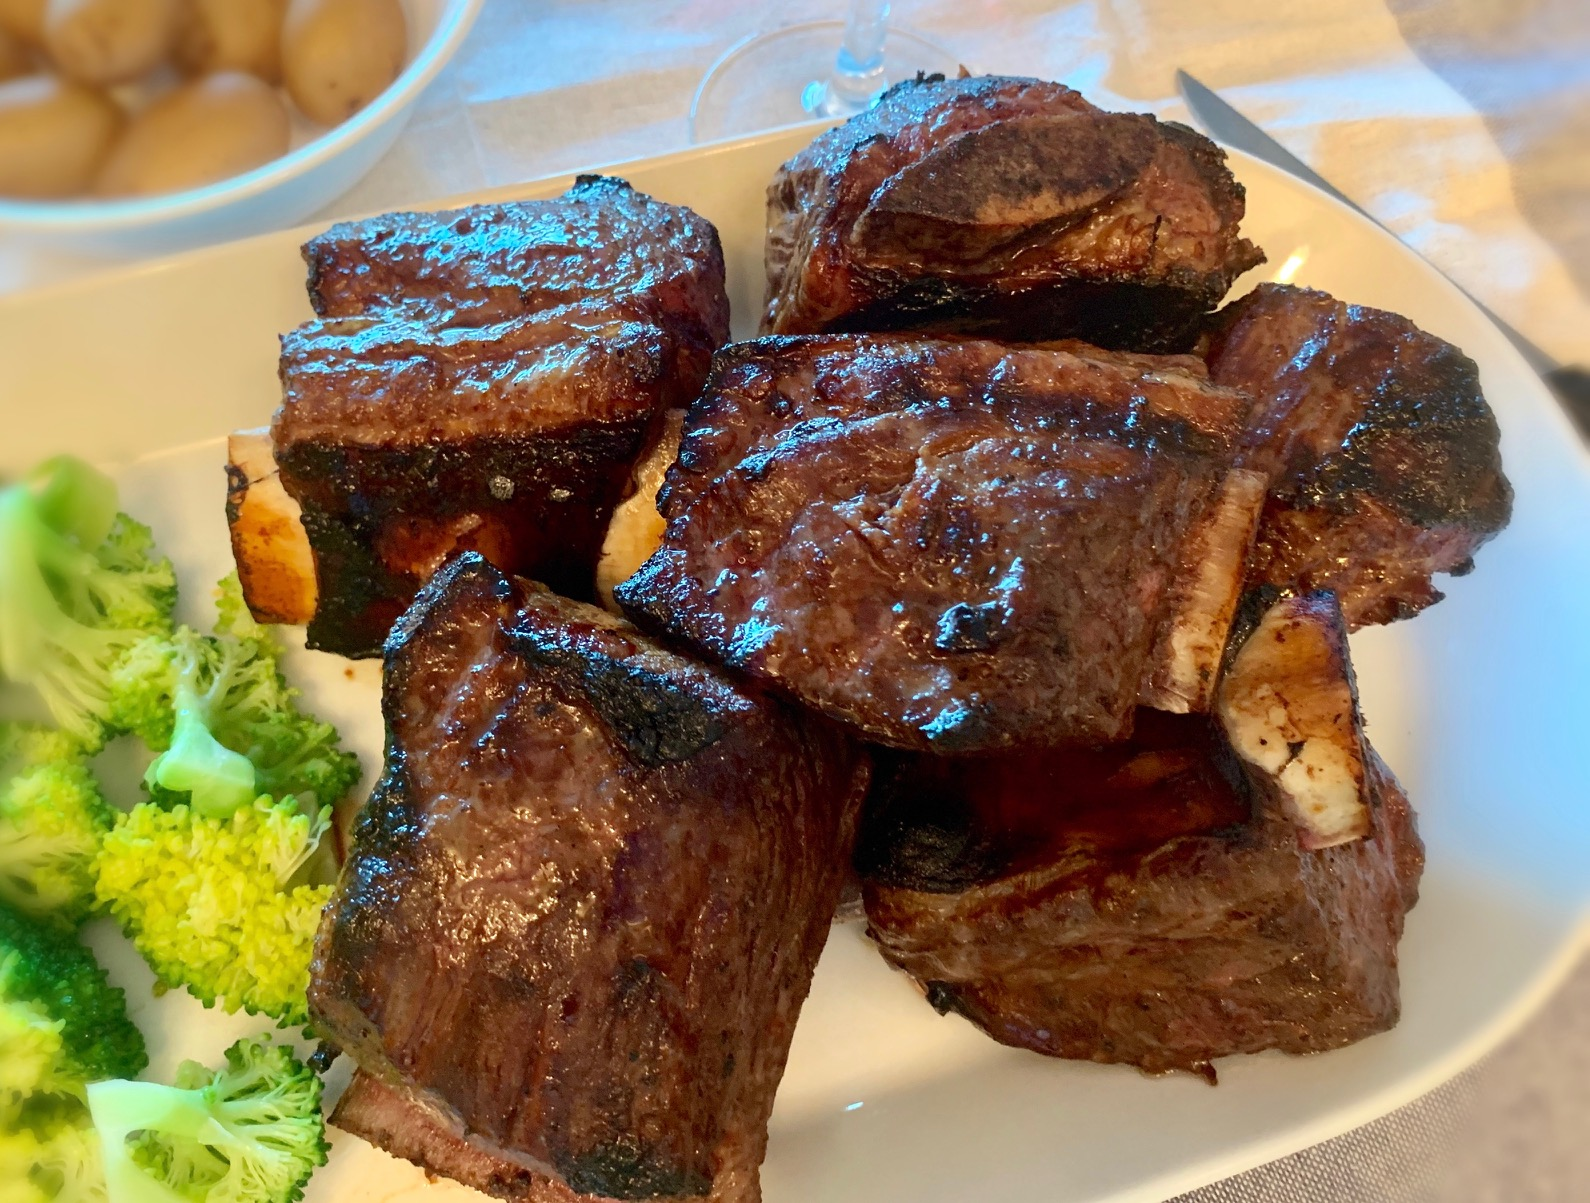 Barbecued Bone-in Beef Short Ribs 韩式烤牛仔骨hán shì kǎo niú zǎi gǔ